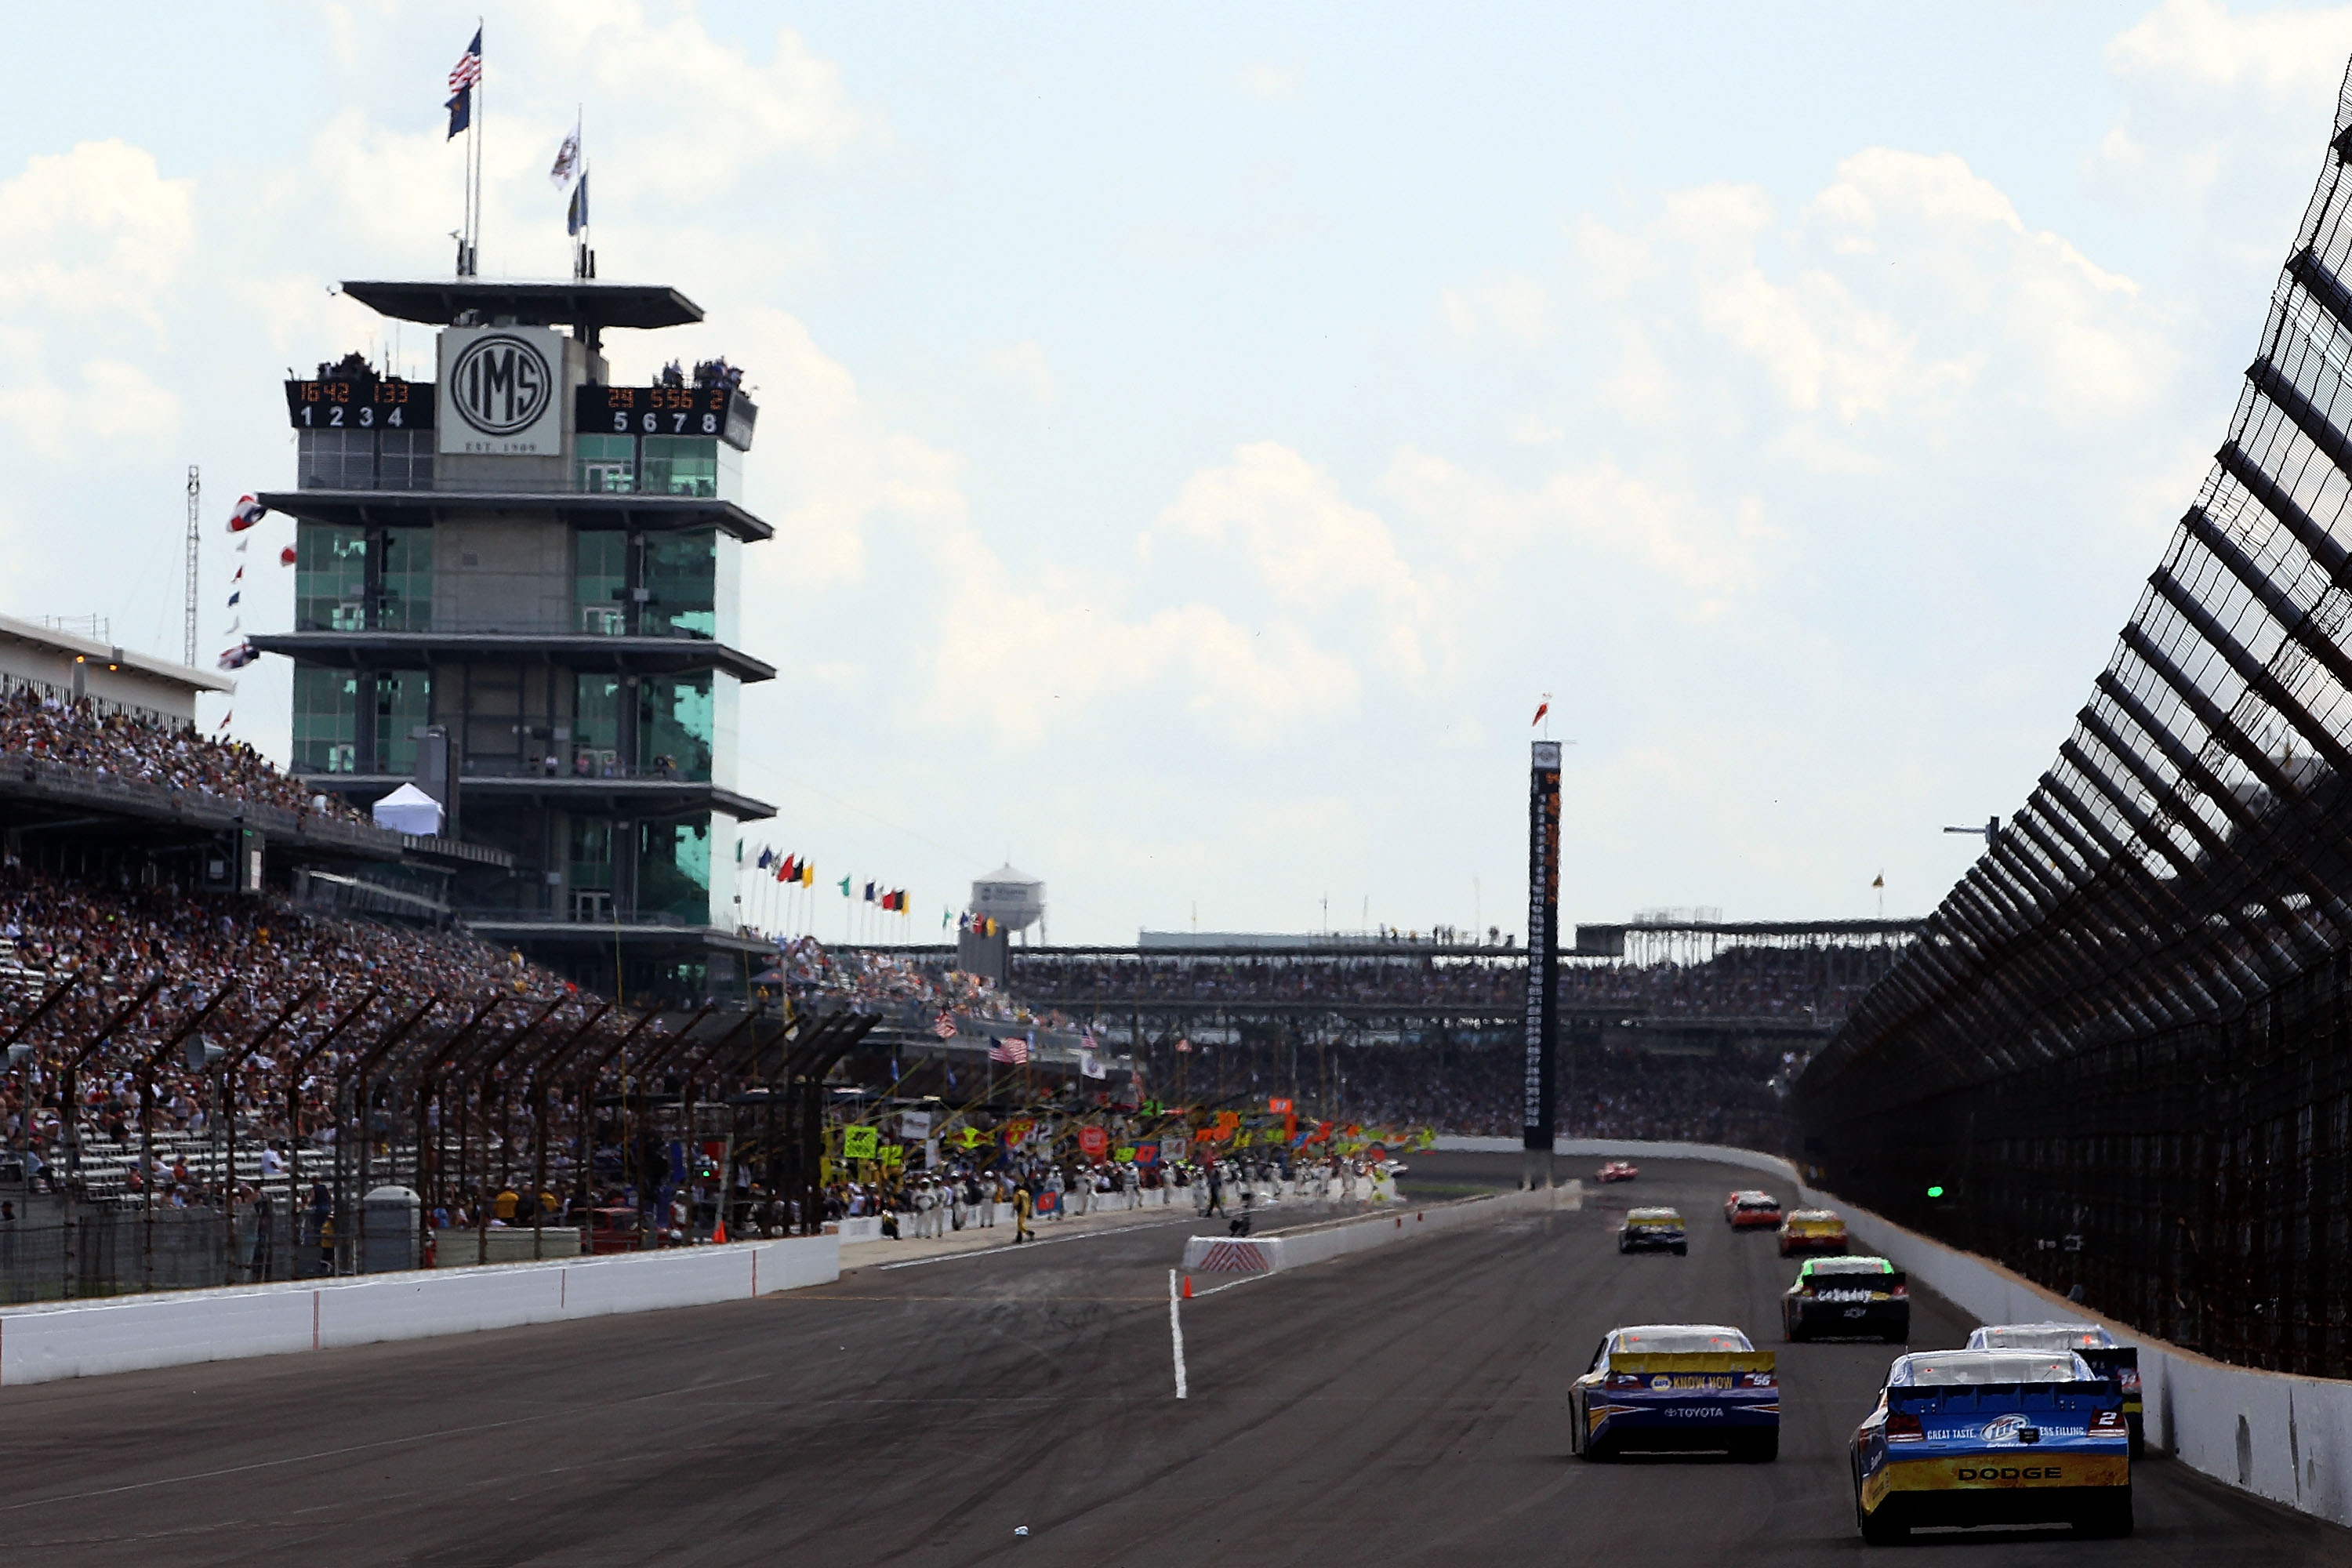 INDIANAPOLIS - JULY 25:  Kurt Busch, driver of the #2 Miller Lite/Vortex Dodge, drives during the NASCAR Sprint Cup Series Brickyard 400 at Indianapolis Motor Speedway on July 25, 2010 in Indianapolis, Indiana.  (Photo by Christian Petersen/Getty Images)